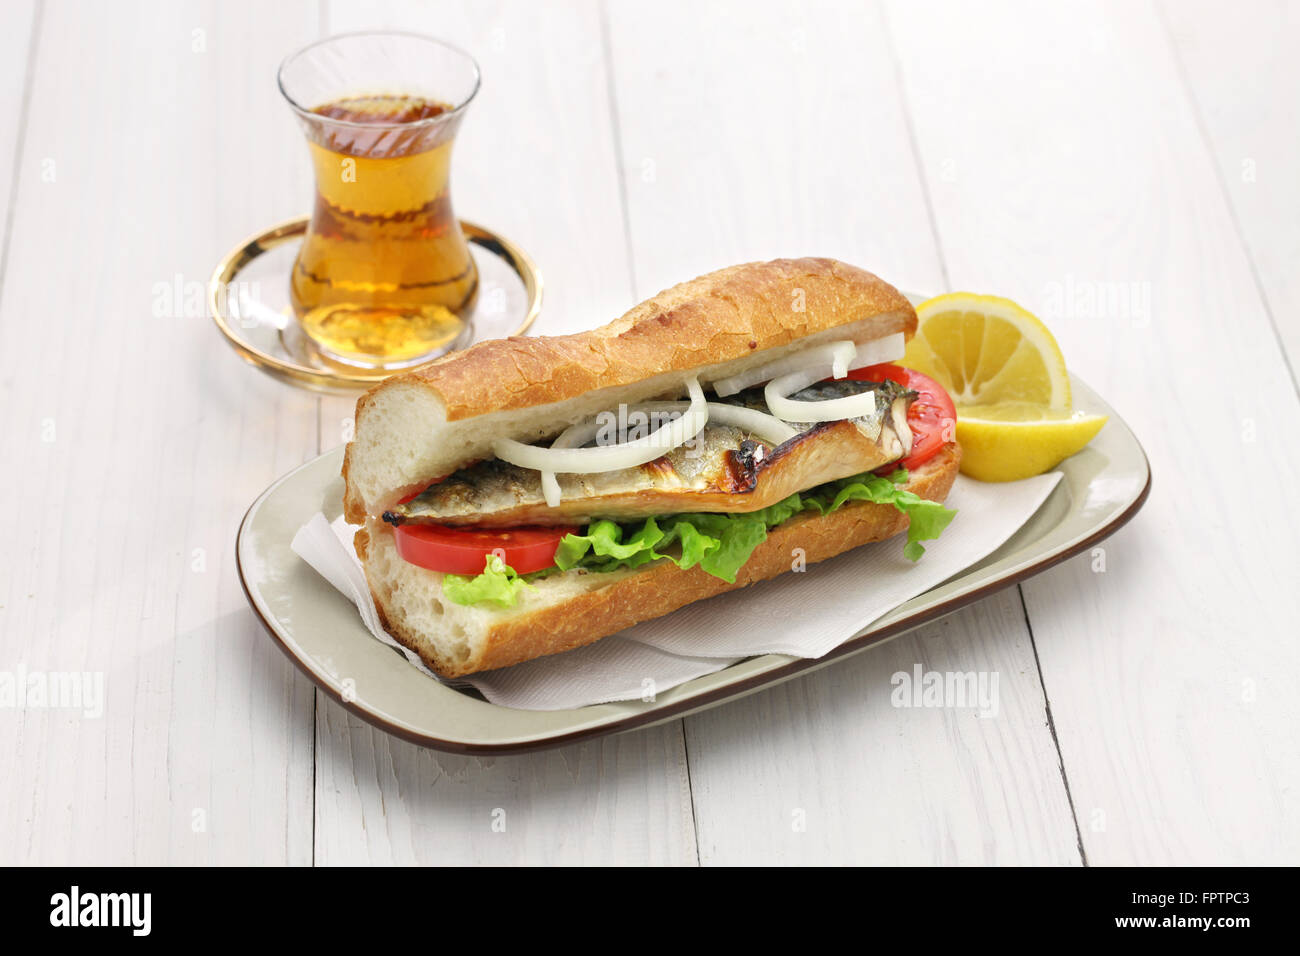 mackerel fish sandwich and a glass of tea,turkish food - Stock Image